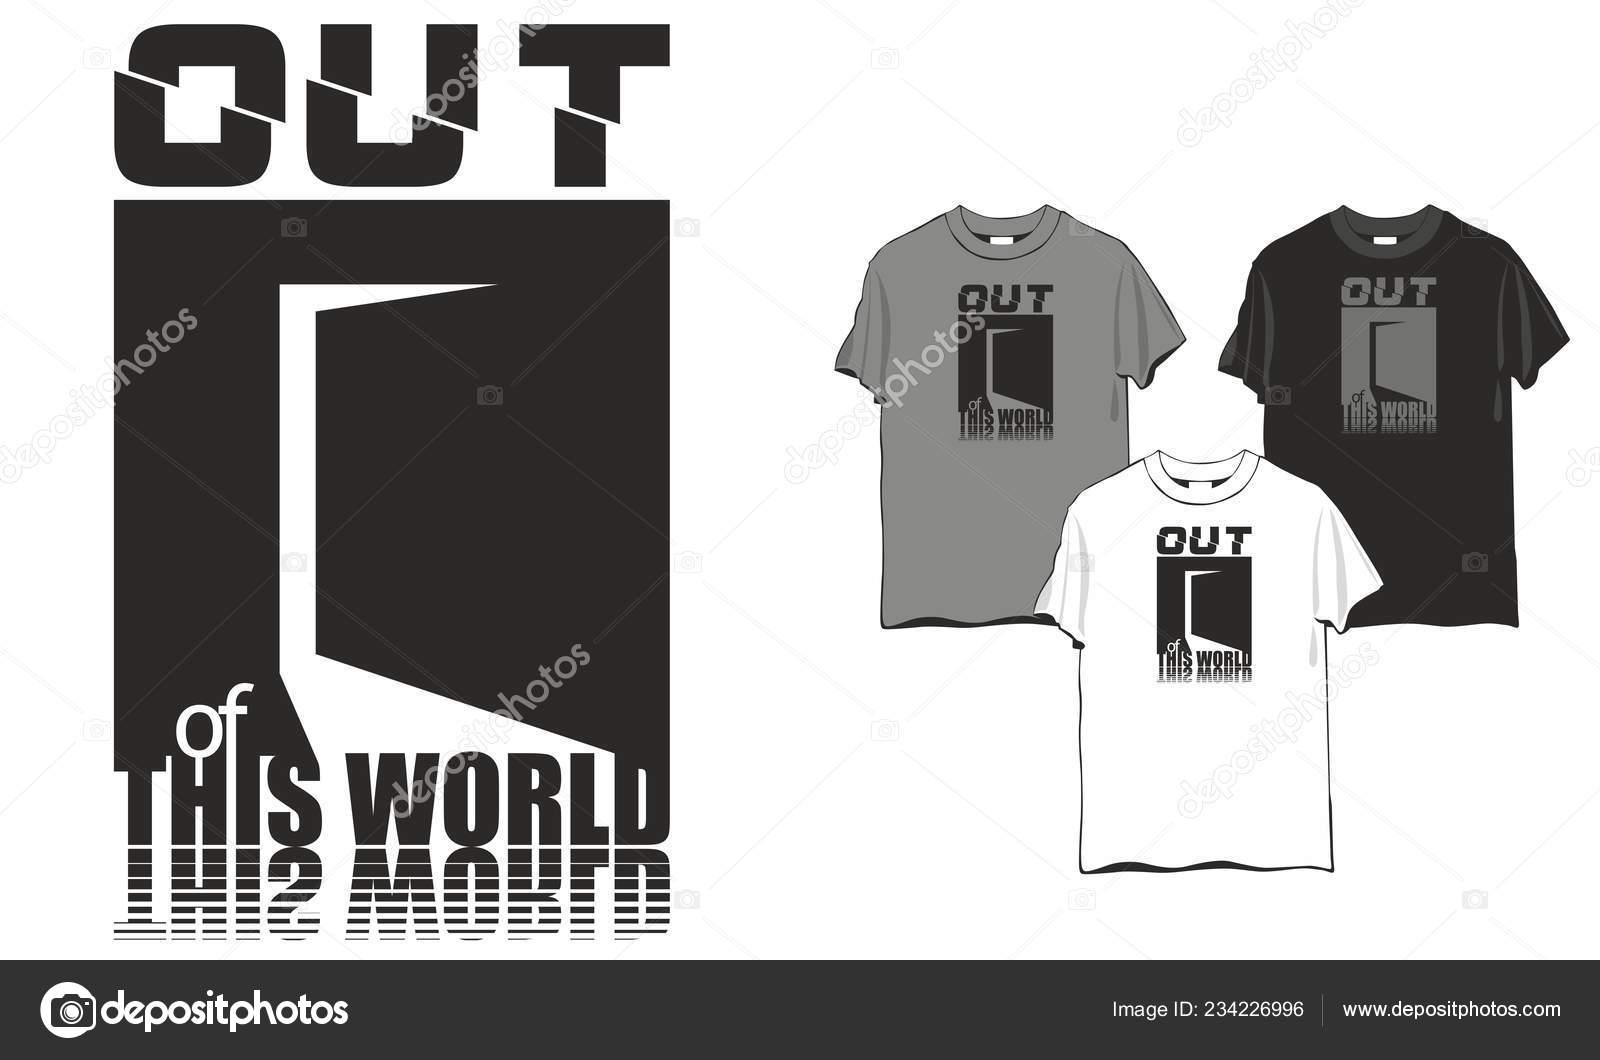 Out world slogan stylized open door pin embroidery applique